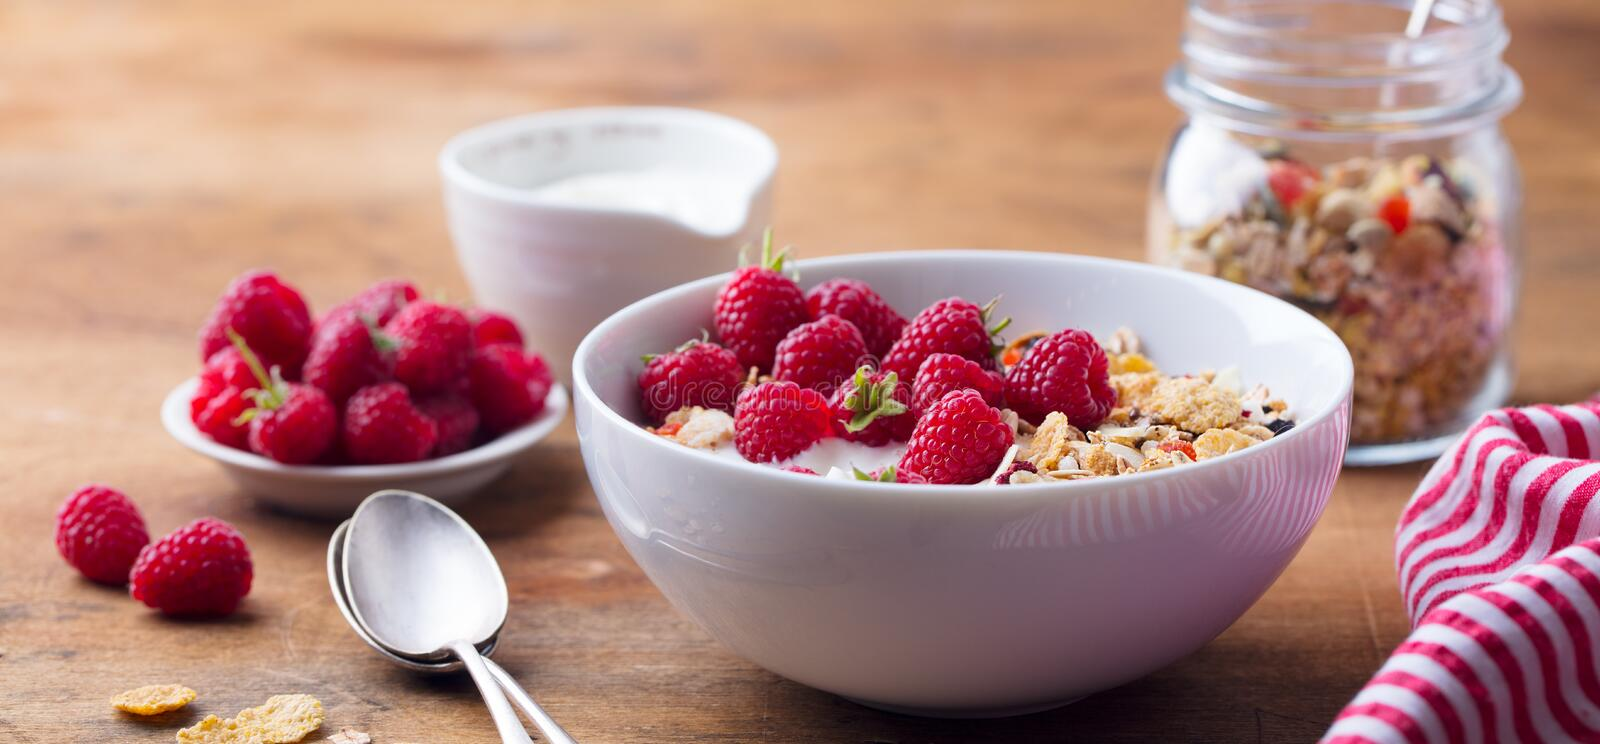 Healthy breakfast. Fresh granola, muesli with yogurt and berries on wooden background. royalty free stock photos